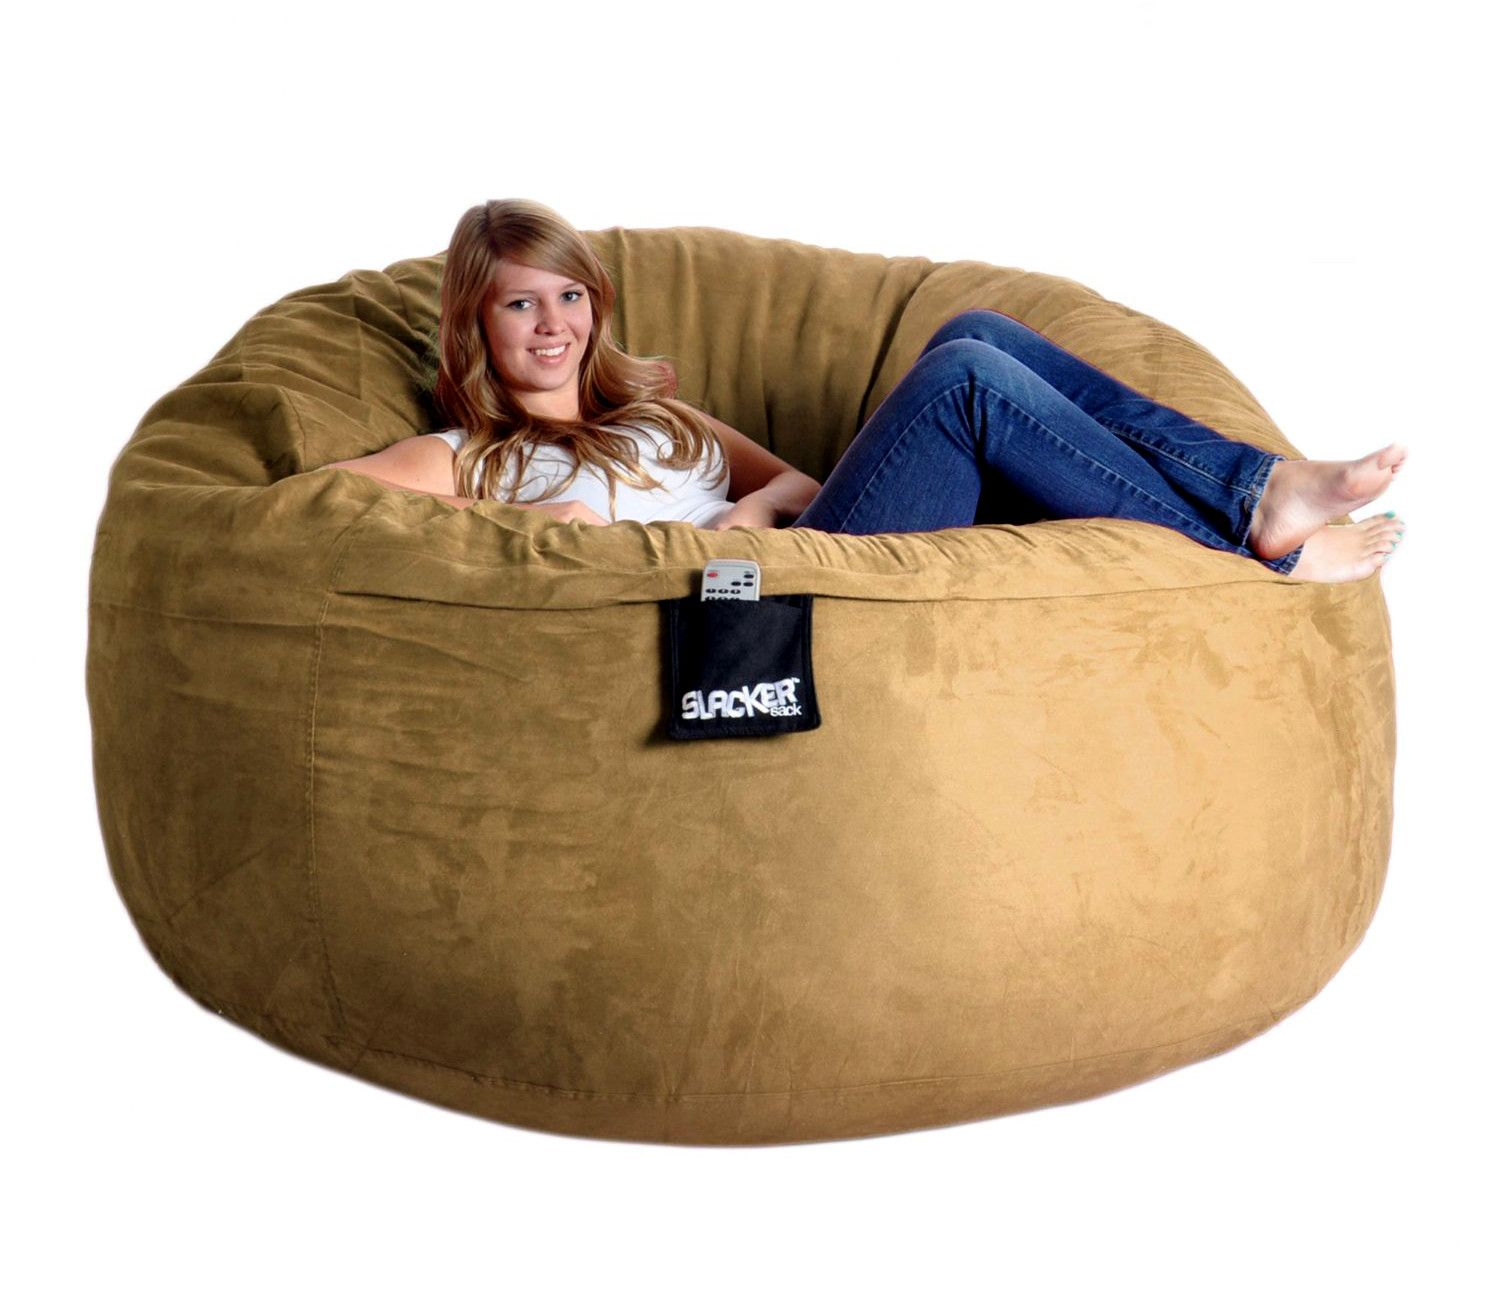 Giant Beanbag | Bean bag, Giant bean bags, Bean bag chair